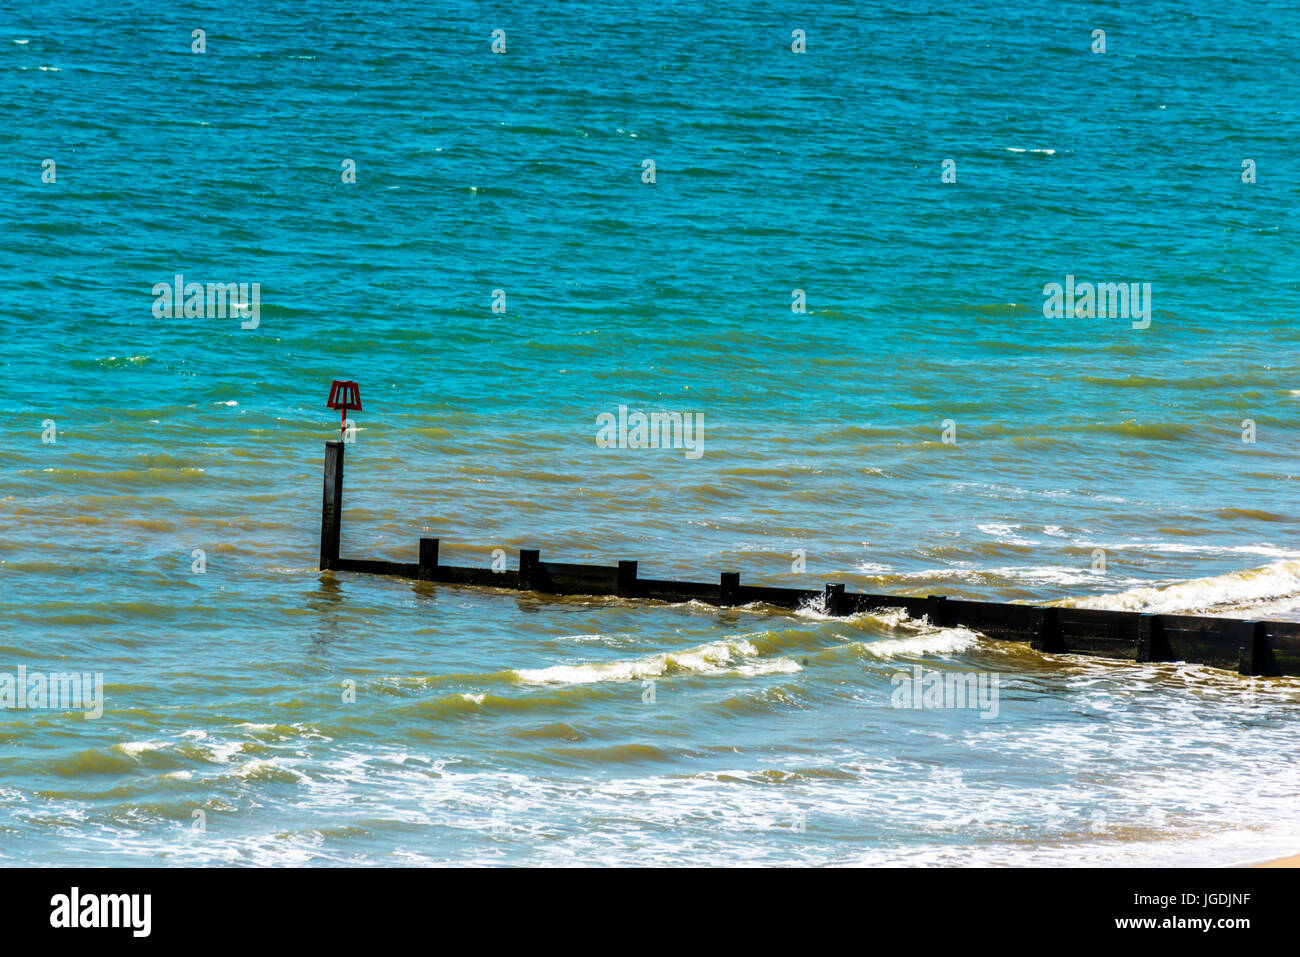 Dock pilings on a sandy beach, blue ocean and yellow sand, sunny hot day in seaside resort, summer - Stock Image